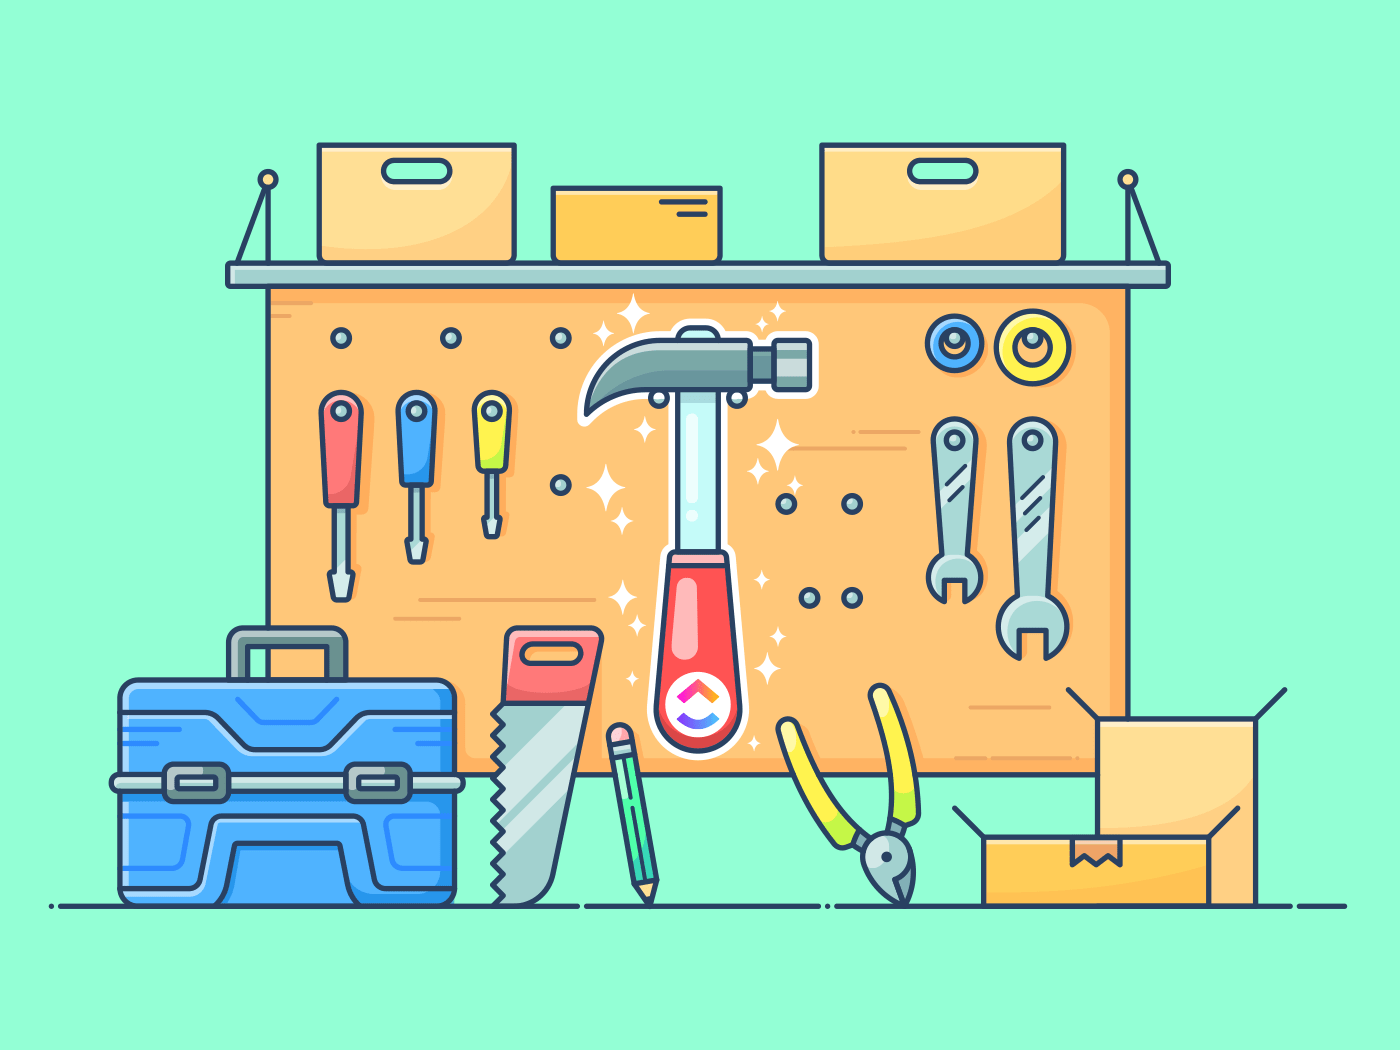 Top 10 Project Management Tools (Features, Pros, Cons, Pricing)